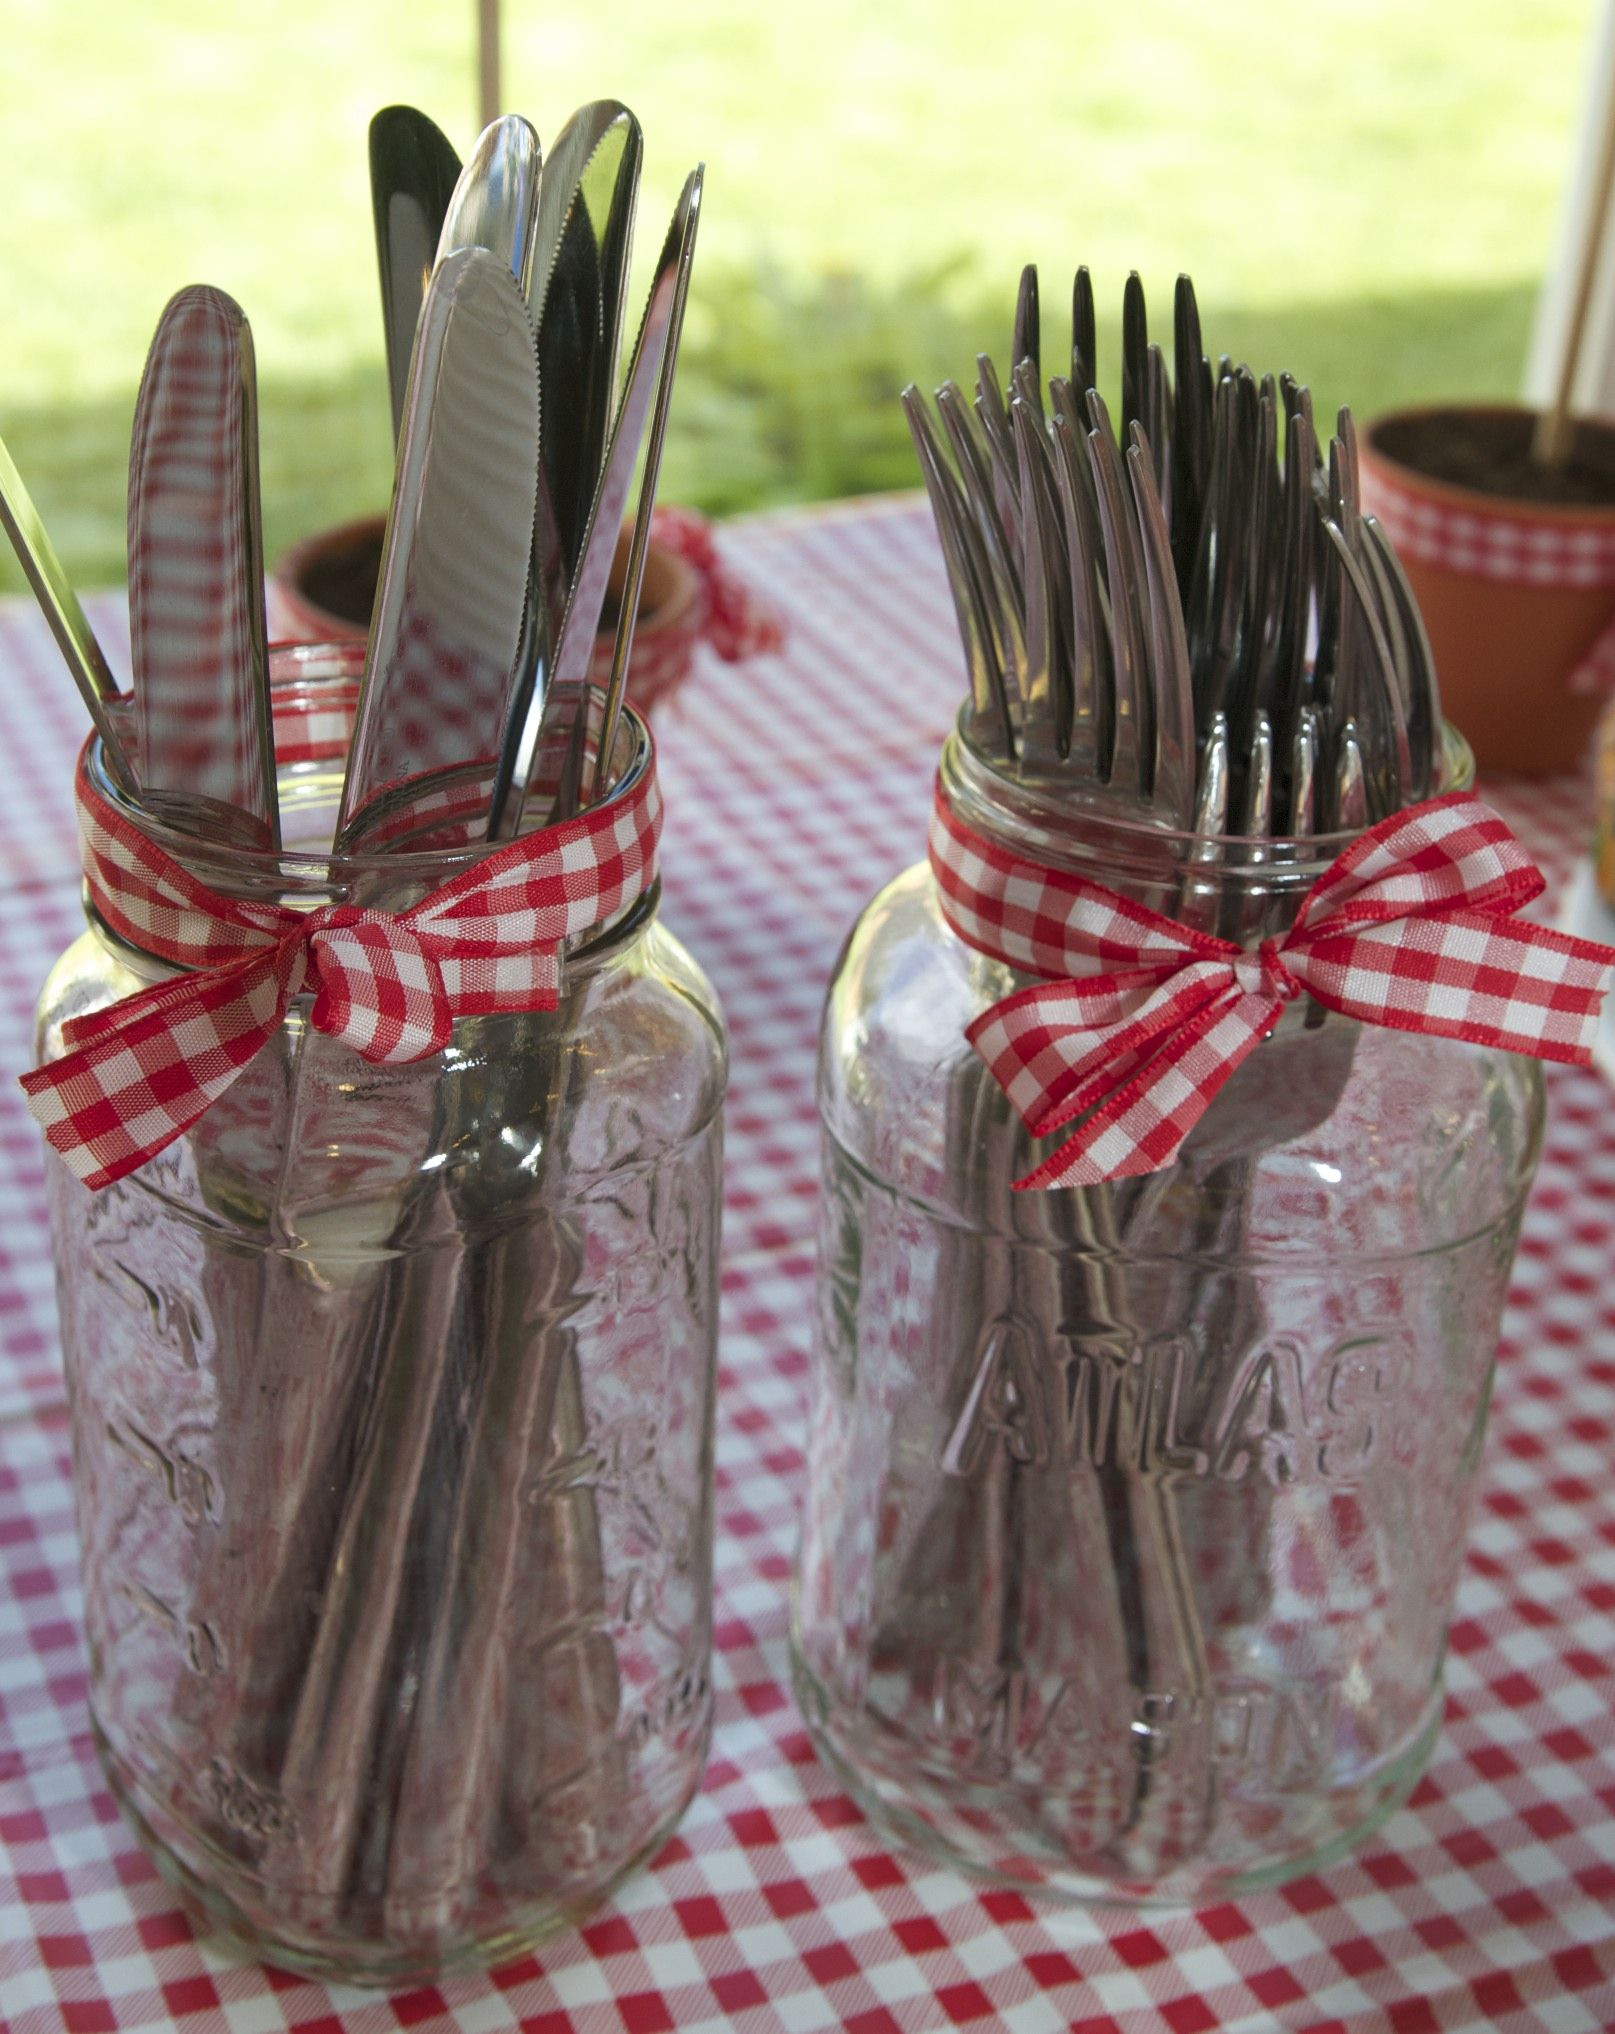 Picnic Themed Decorations What About We Do Small Mason Jars With Old Fashion Gums